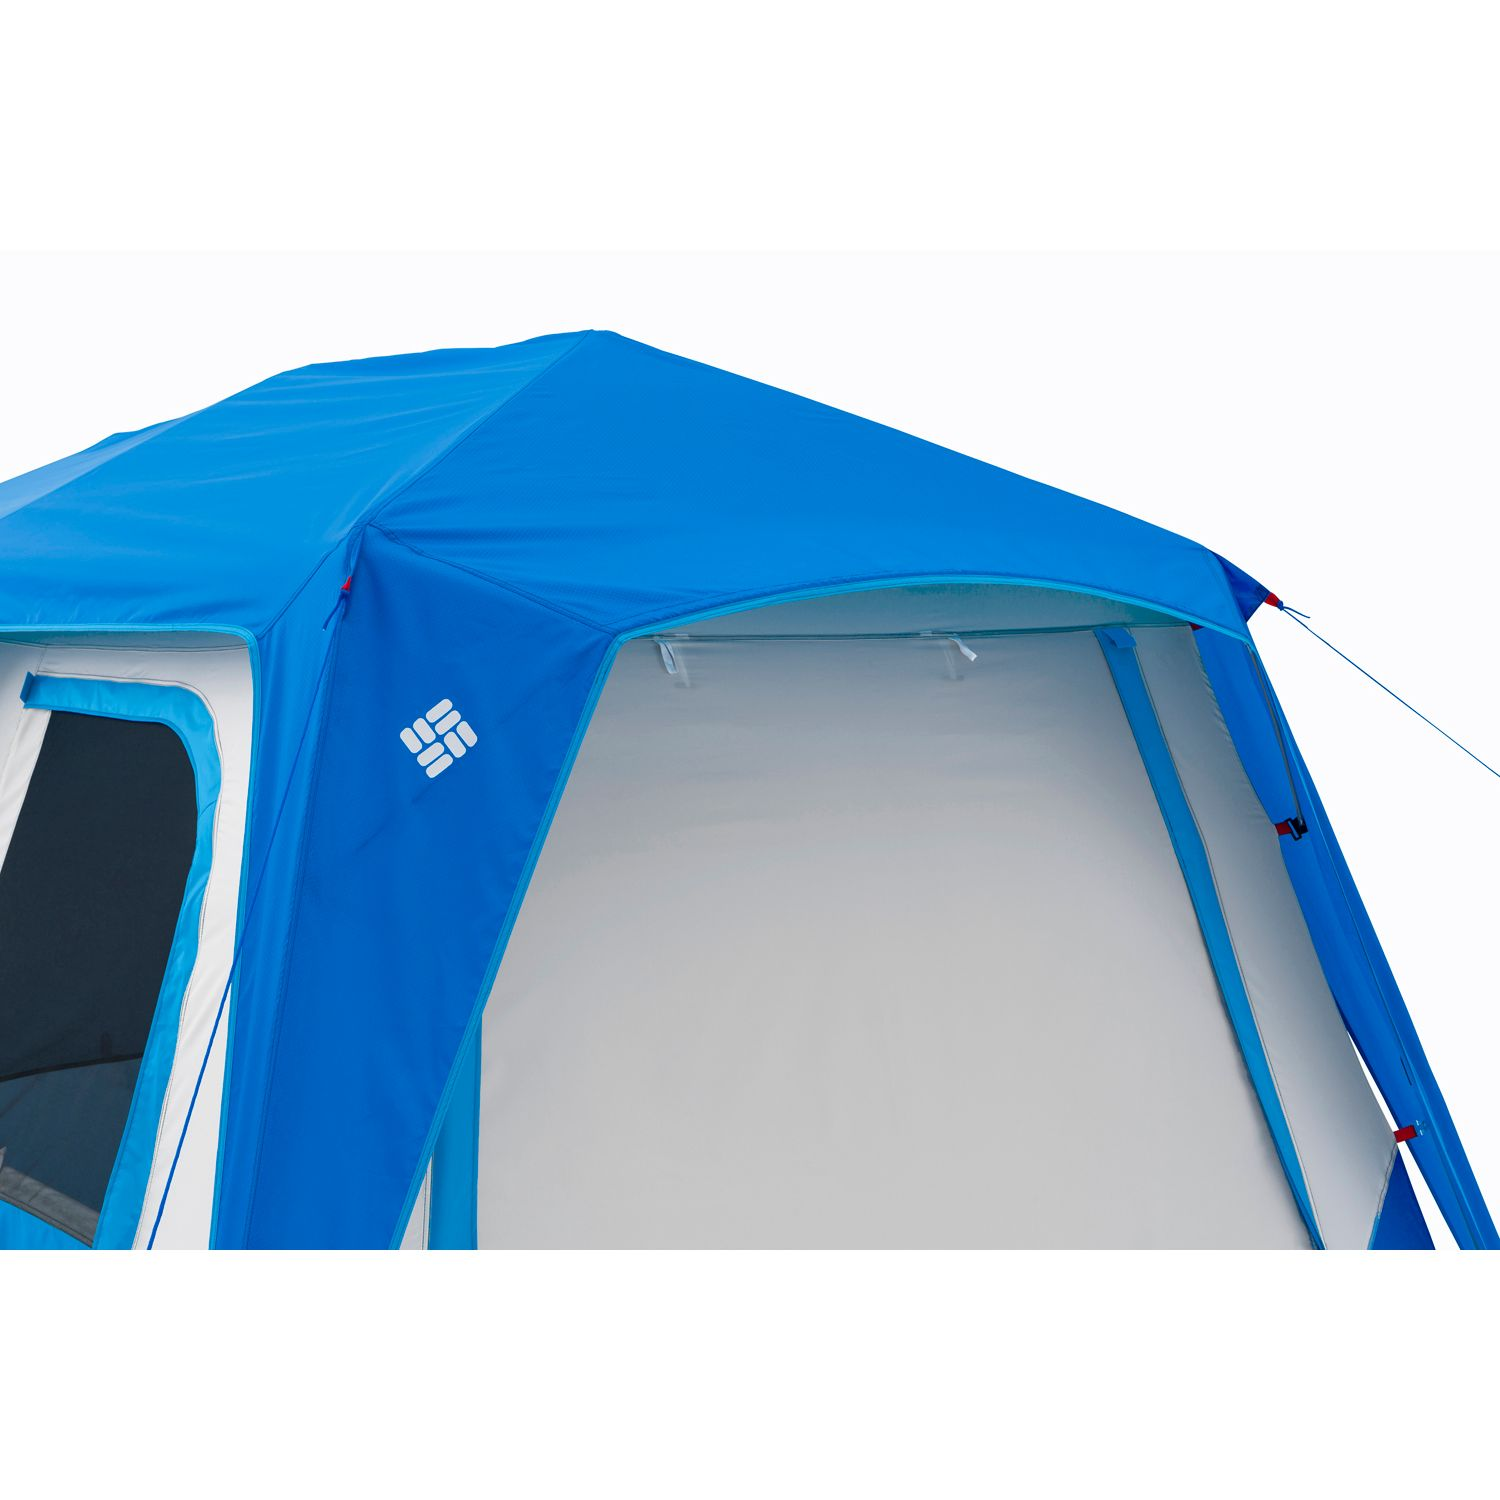 ... Columbia 8-Person Instant Cabin Tent ...  sc 1 st  Kohlu0027s : columbia 8 person tent - memphite.com